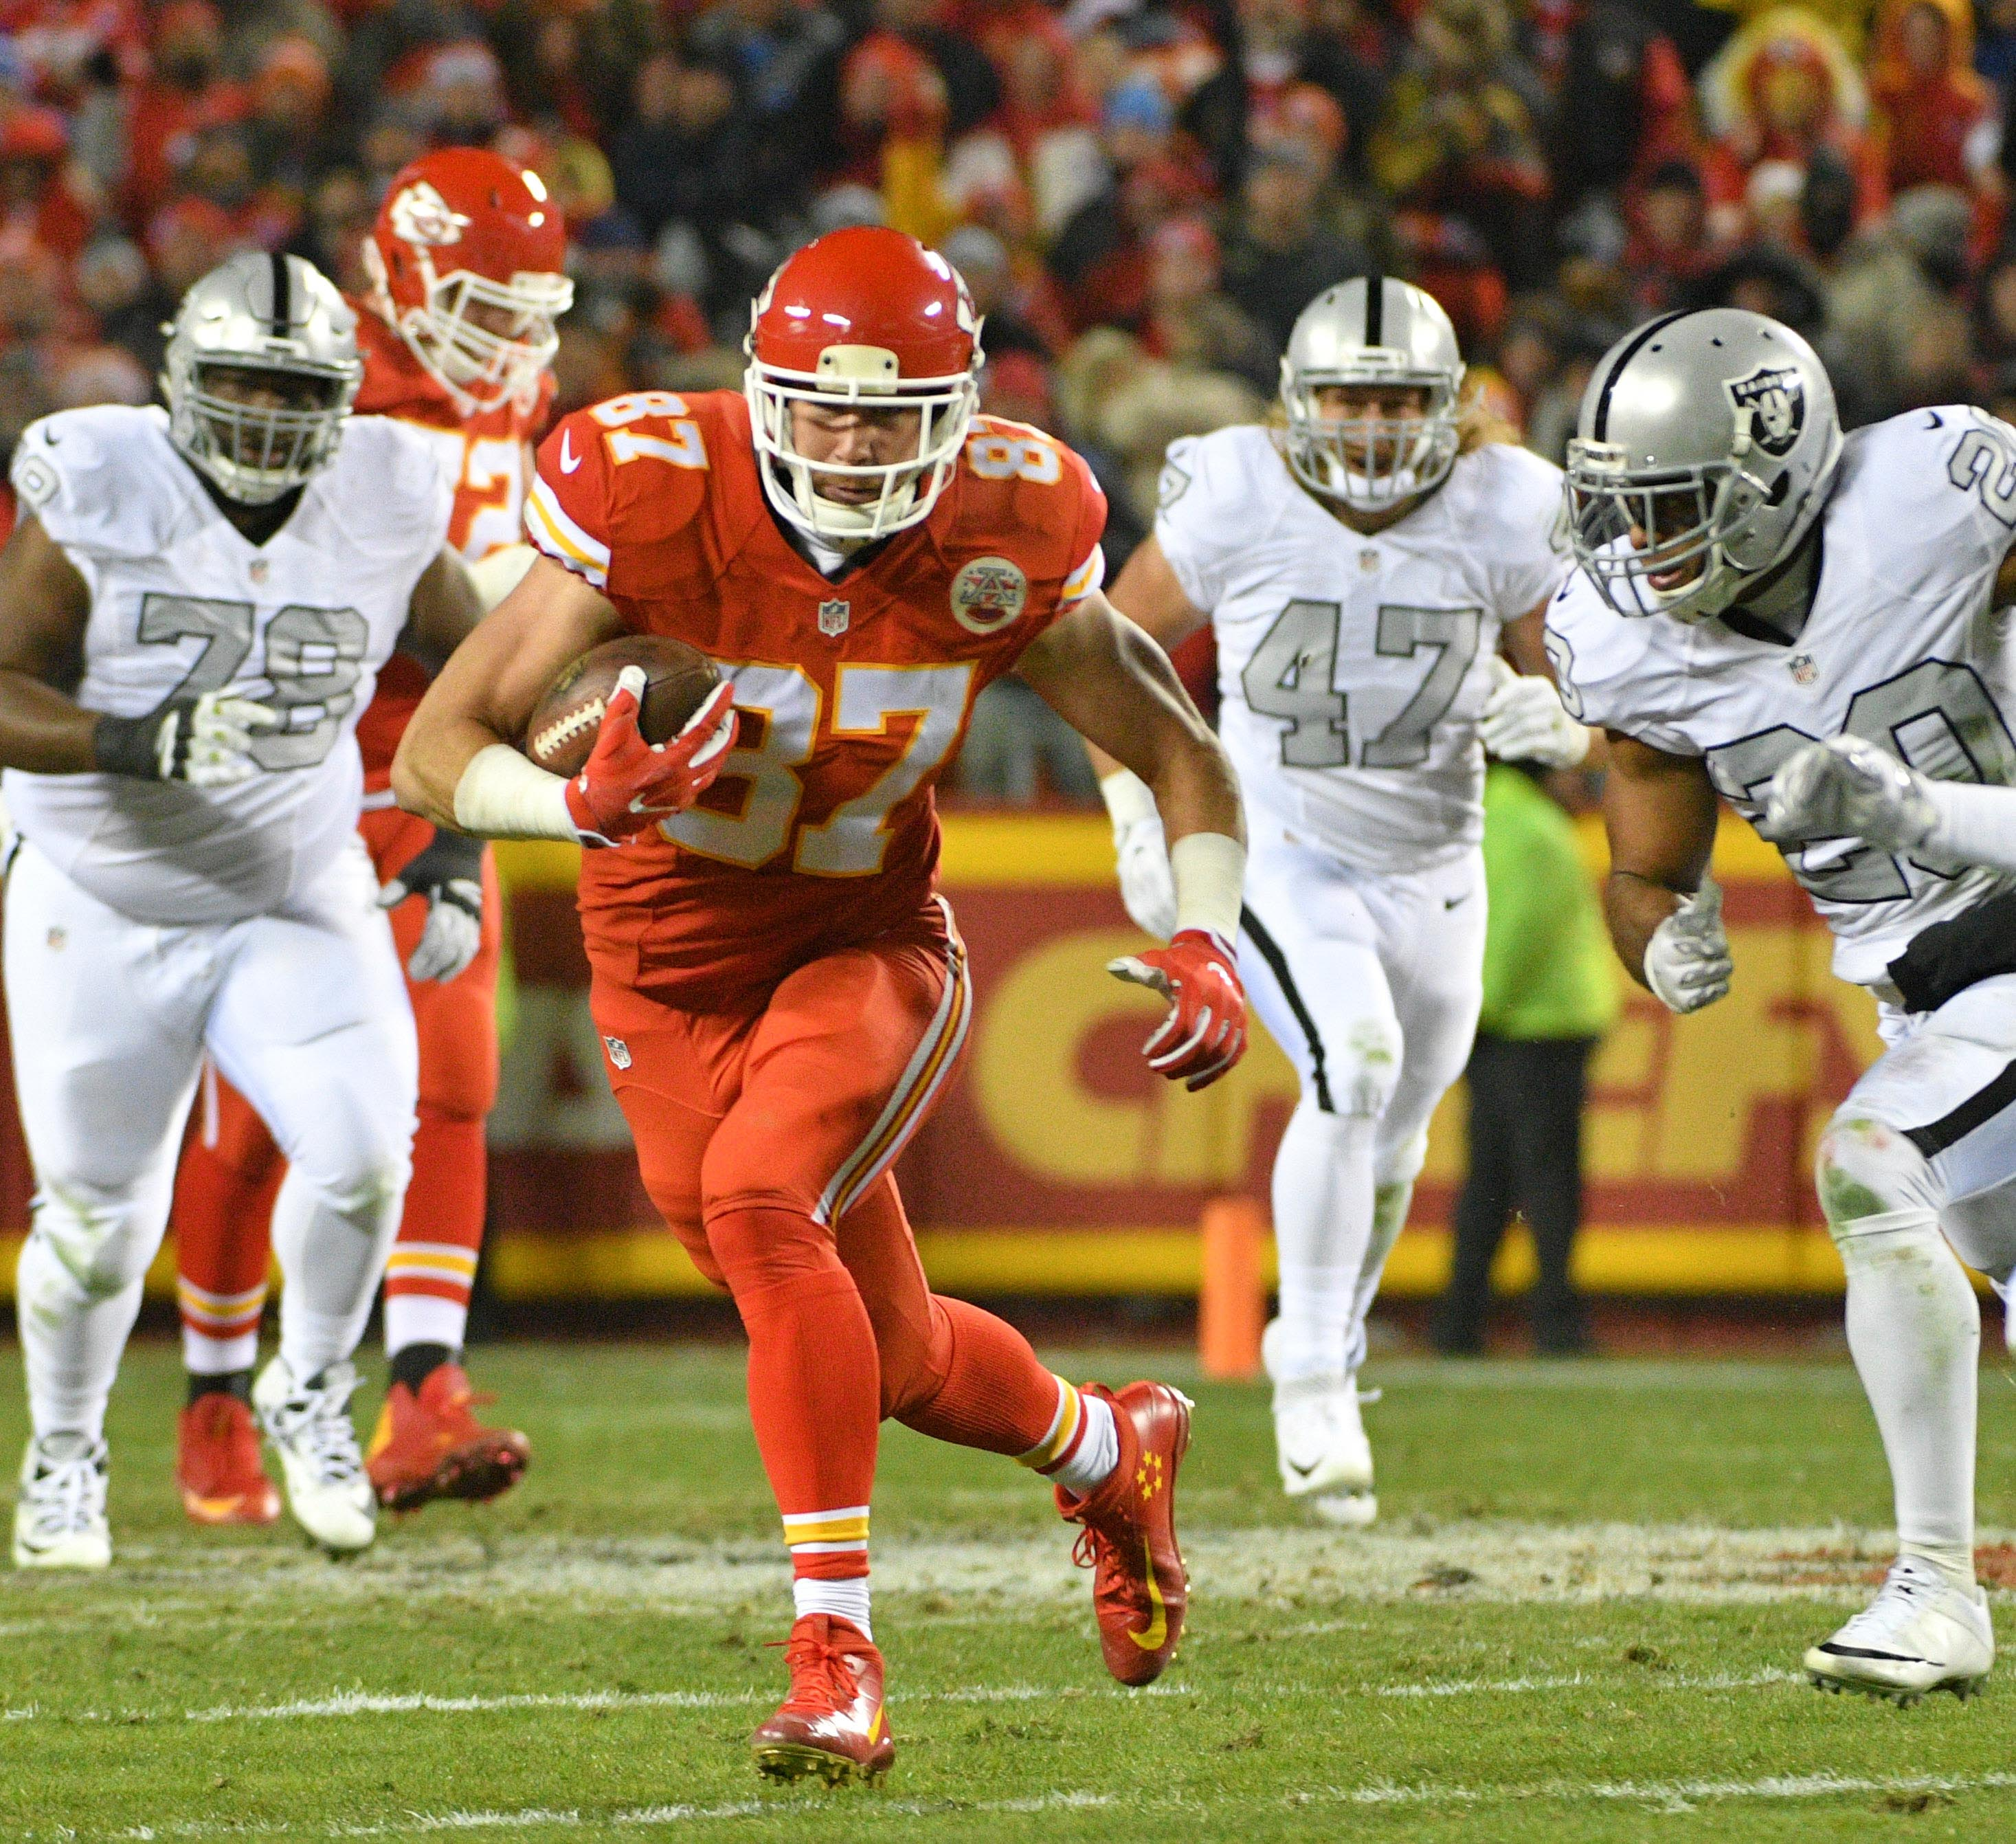 AFC playoff picture: Chiefs earn bye, Steelers could be next